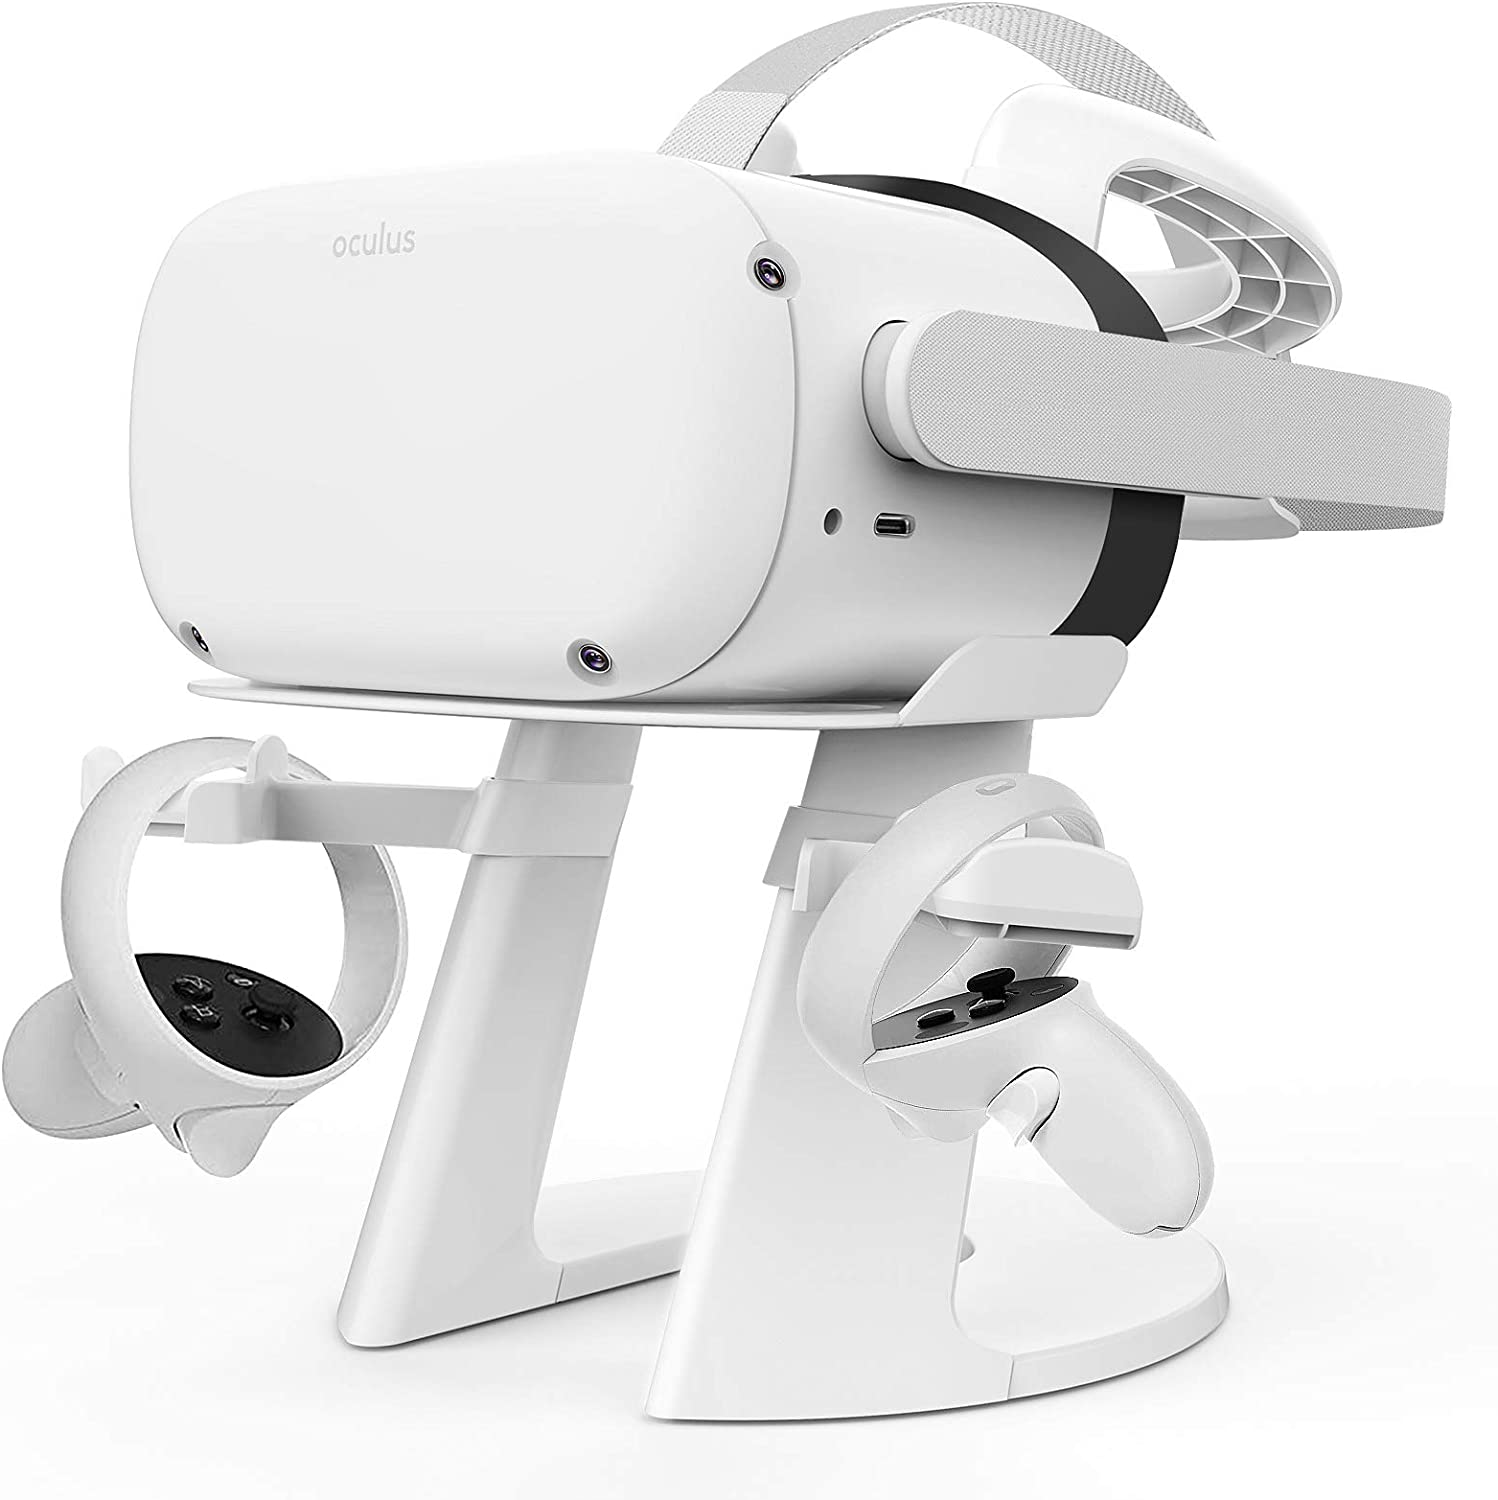 Delamu VR Stand Compatible with High Cheap sale material Oculus Headse Quest 2